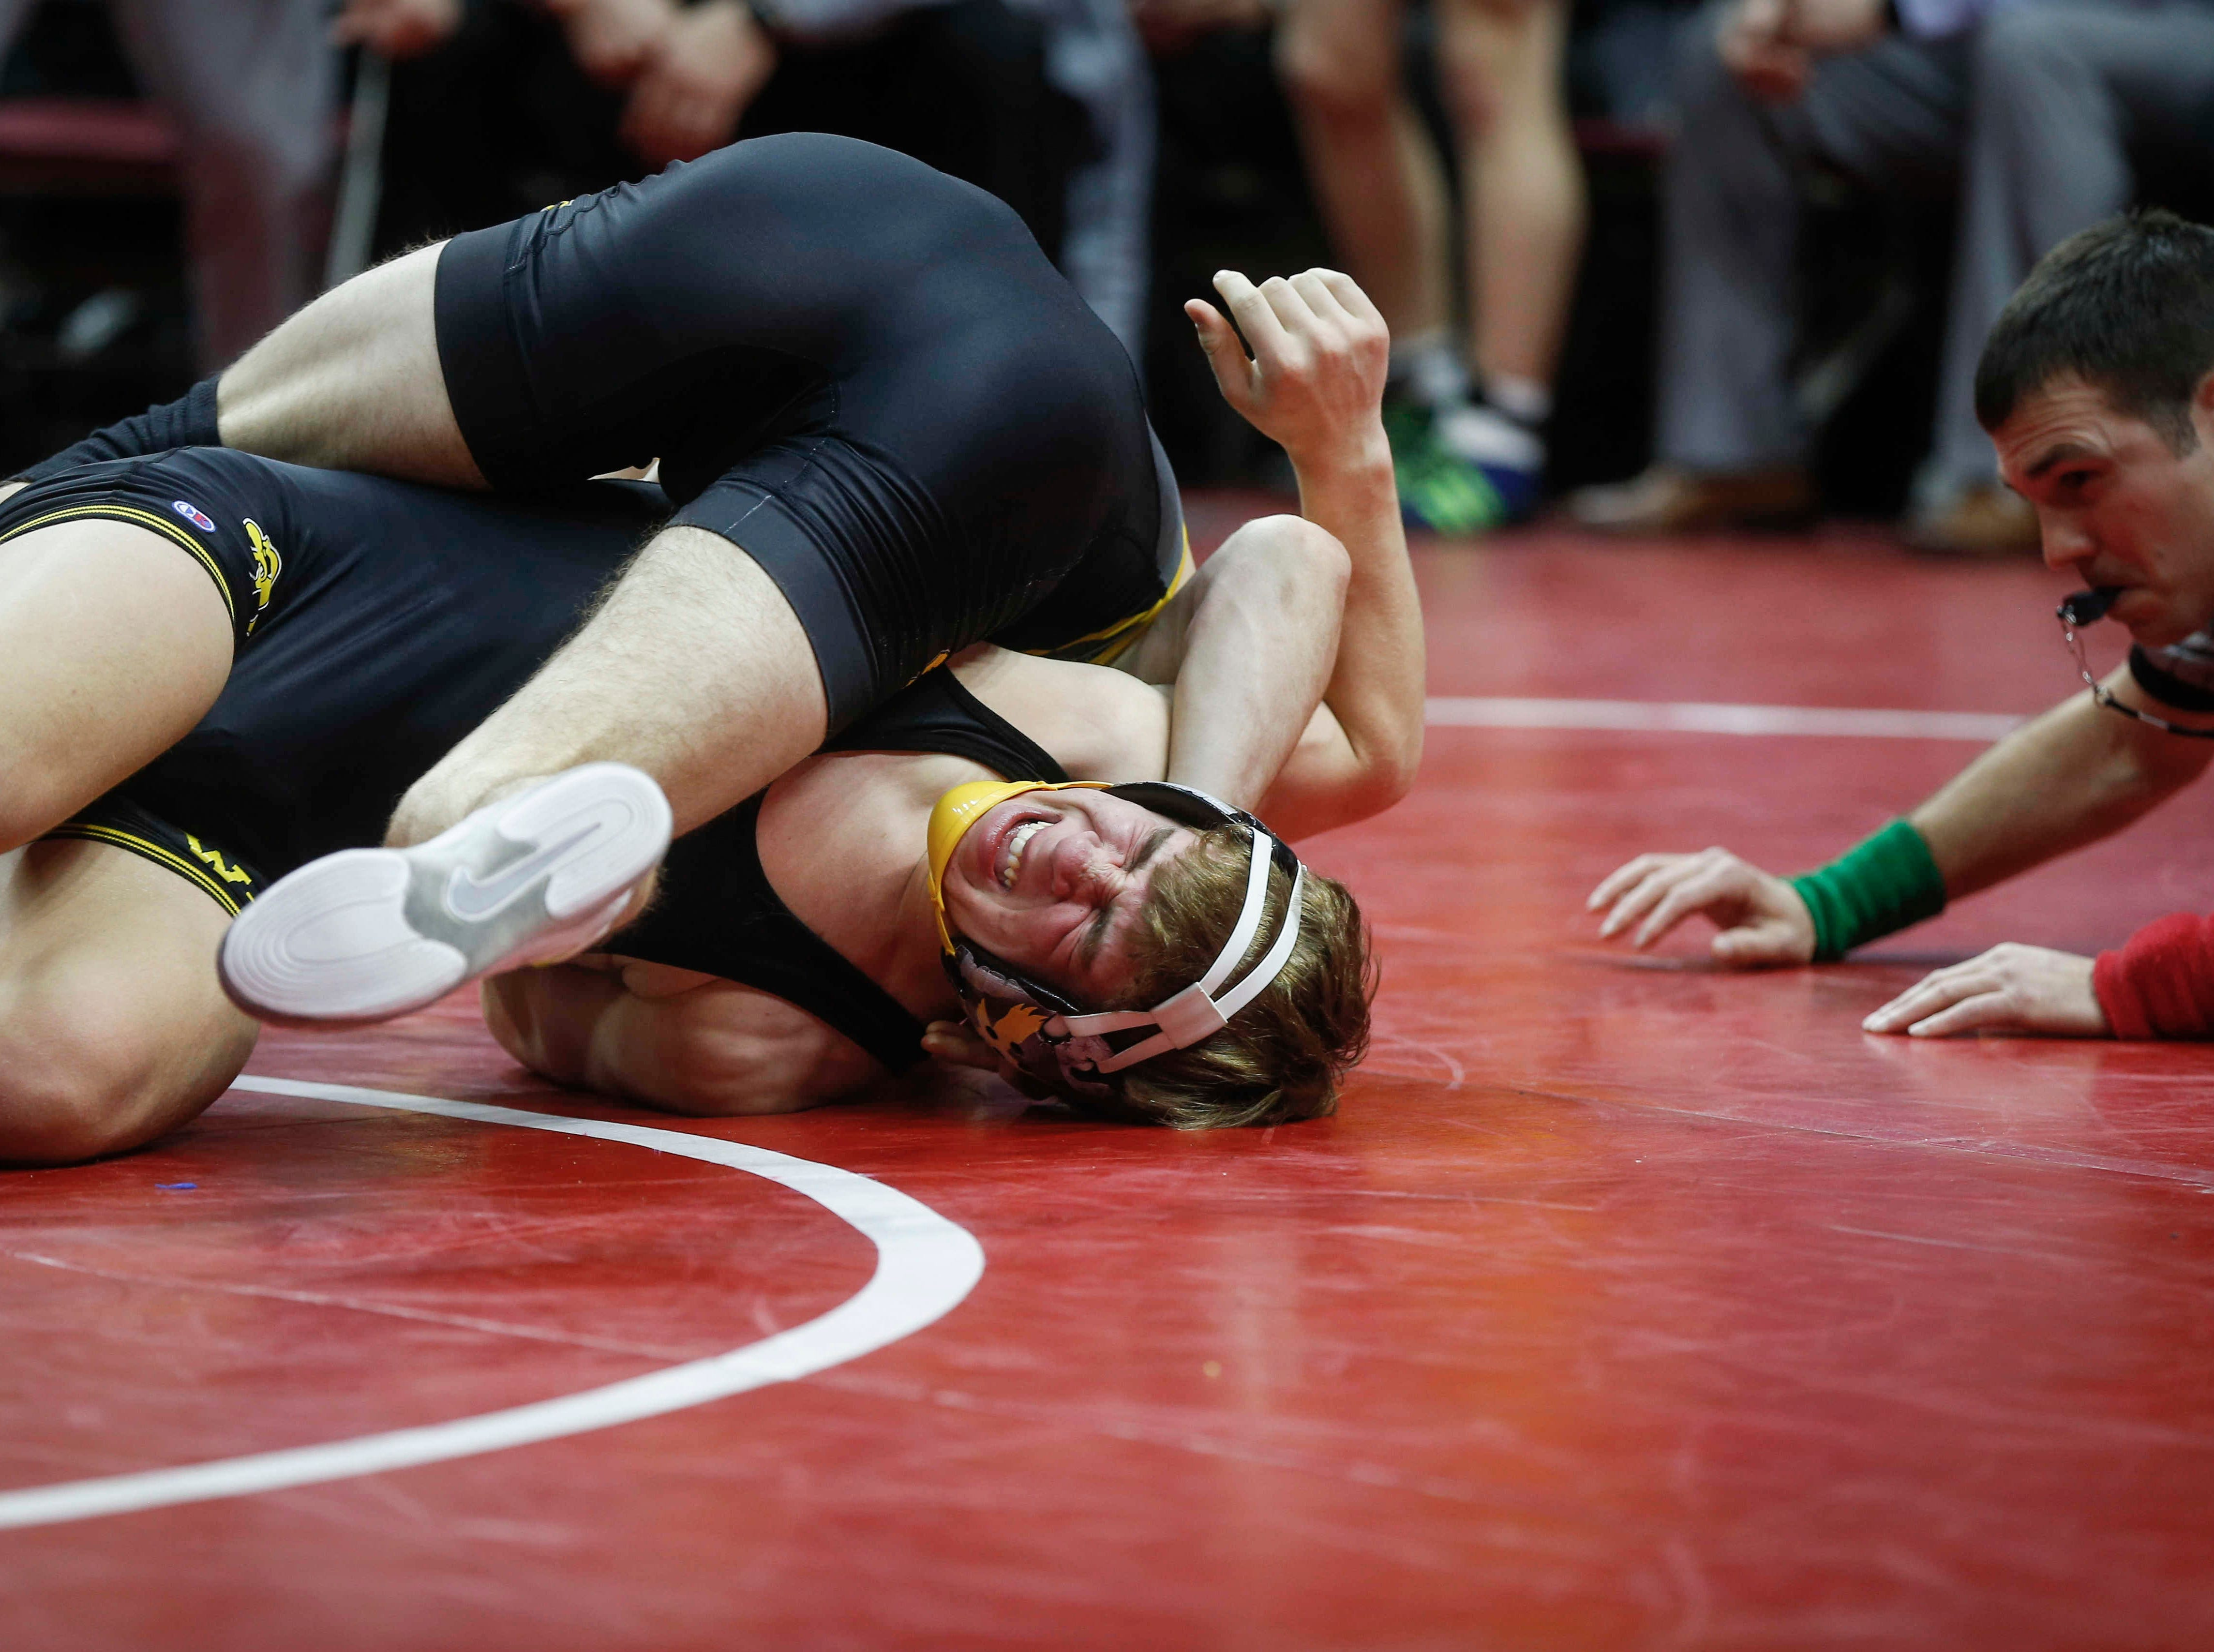 Southeast Polk's Camden Baarda collects back points on  Waverly-Shell Rock's Cayden Langreck at 145 pounds during the 2019 Iowa high school dual wrestling state tournament on Wednesday, Feb. 13, 2019, at Wells Fargo Arena in Des Moines.